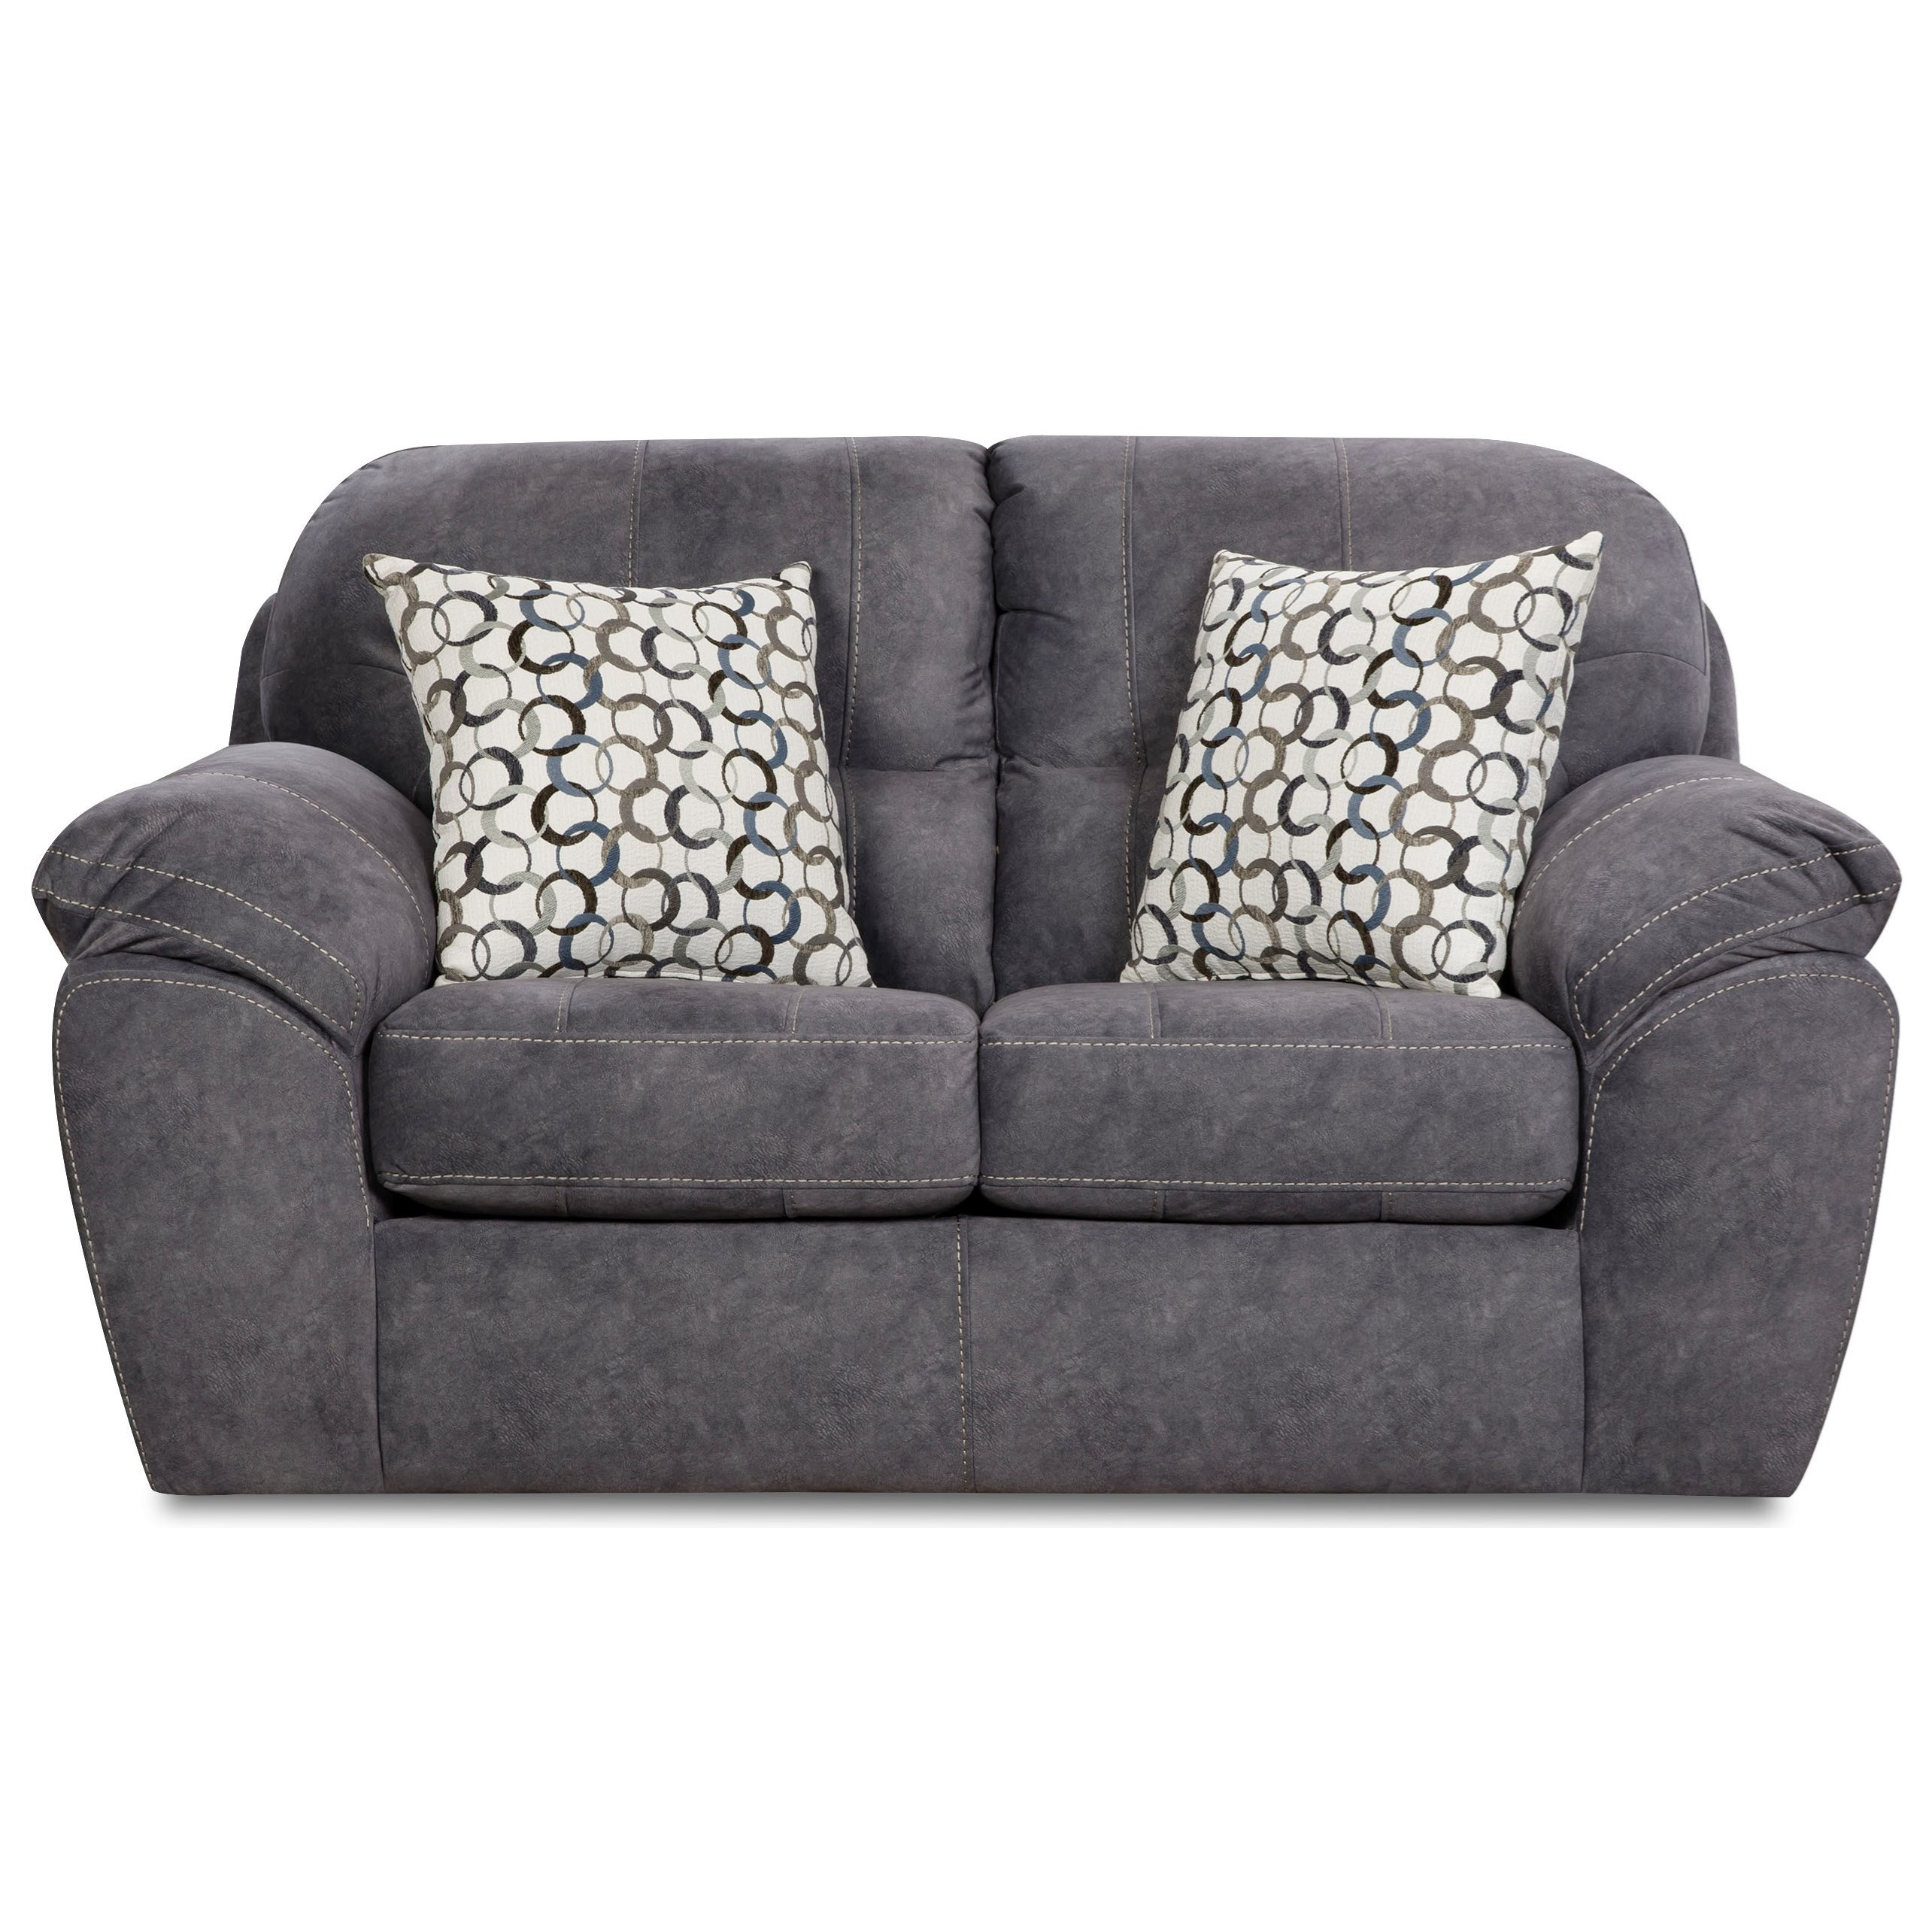 18C0 Loveseat by Corinthian at Story & Lee Furniture